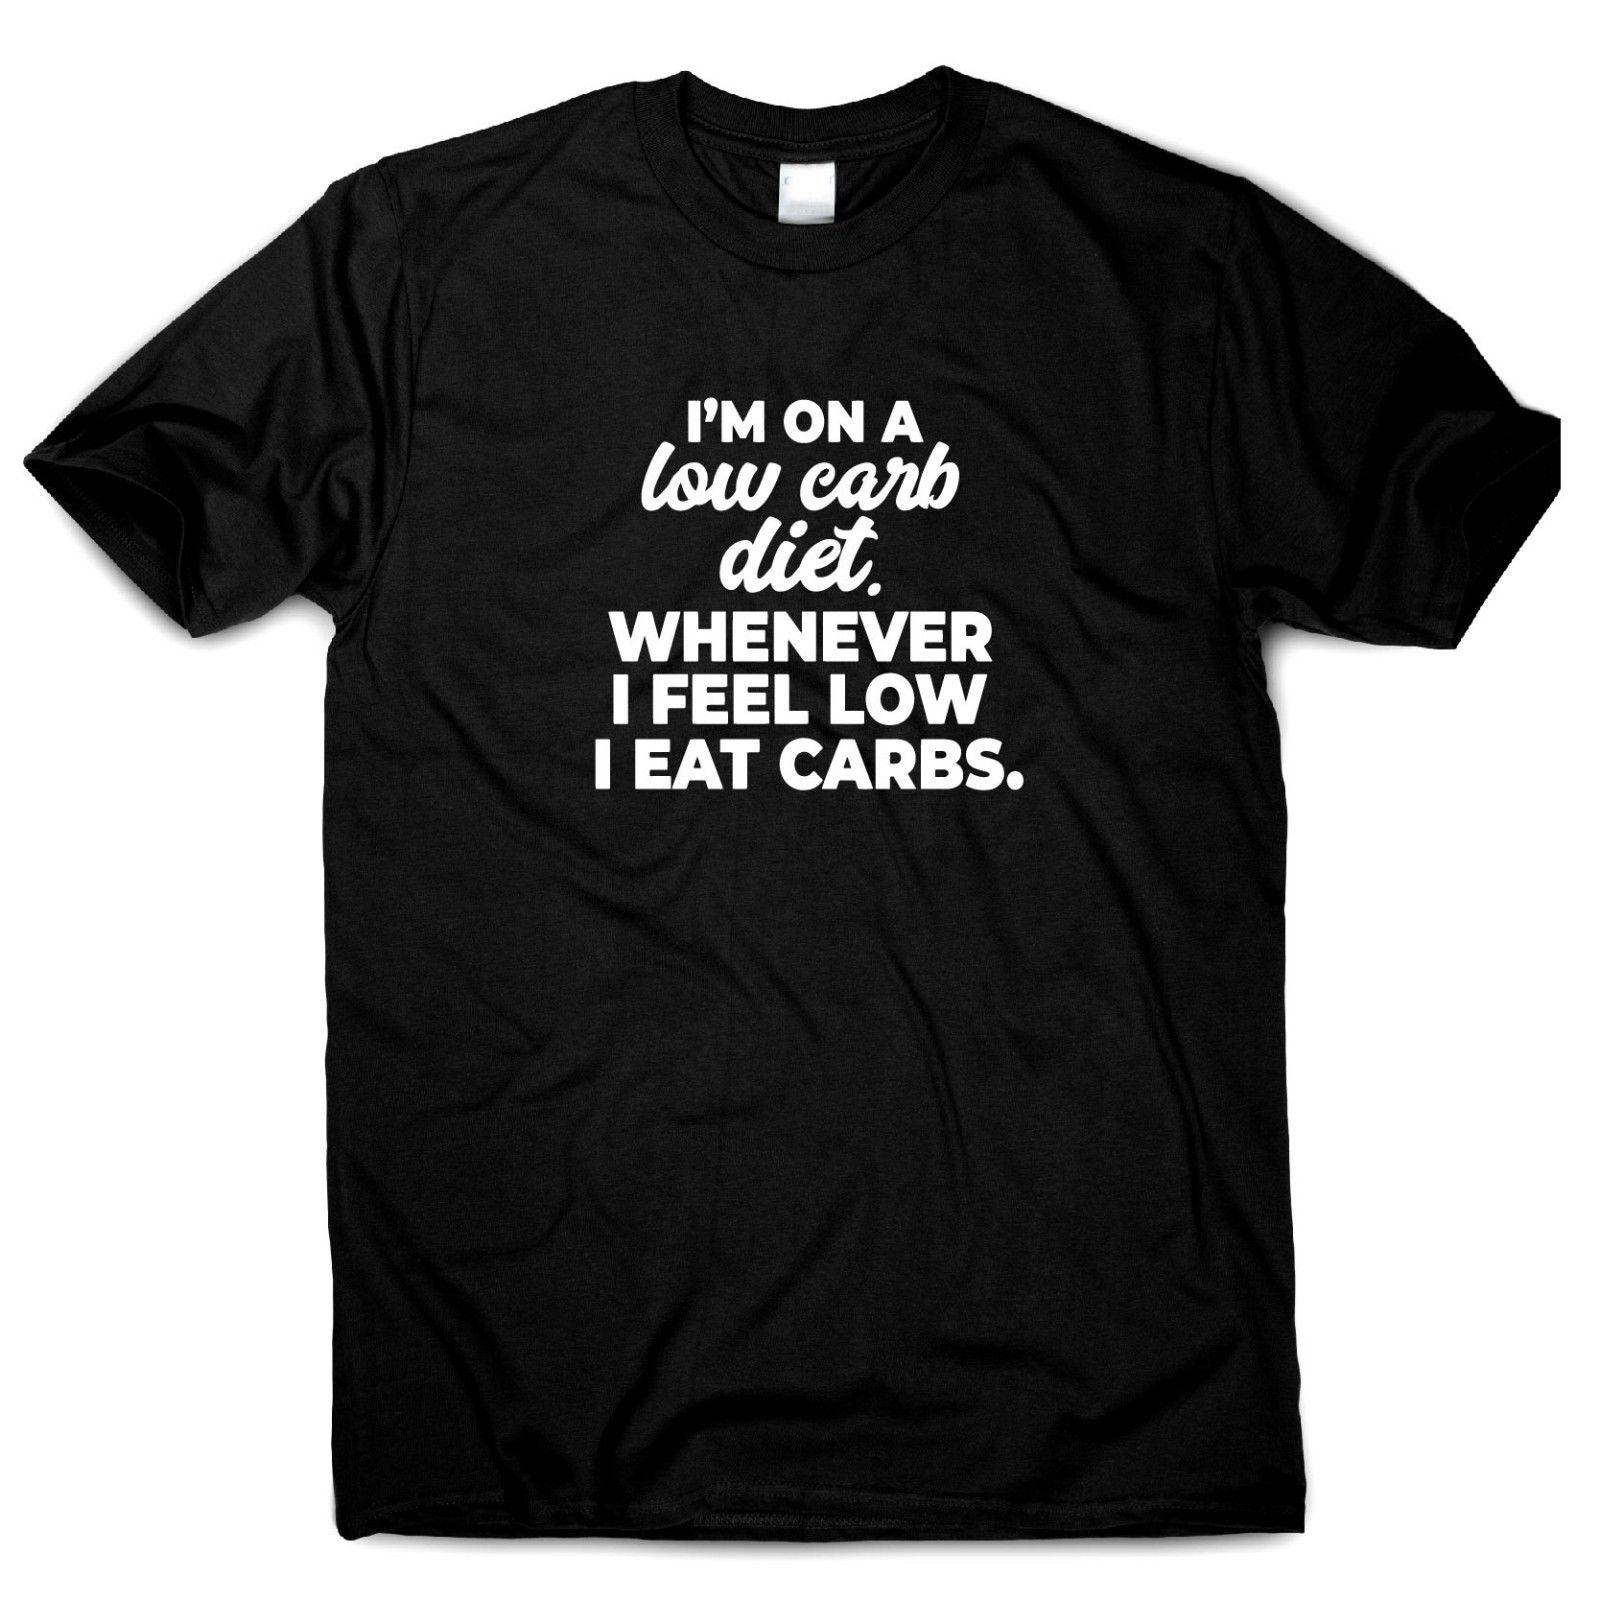 7552f9bae I'm on a low carb diet Funny t shirts mens womens novelty ladies humour S to  3XLjacket croatia leather tshirt